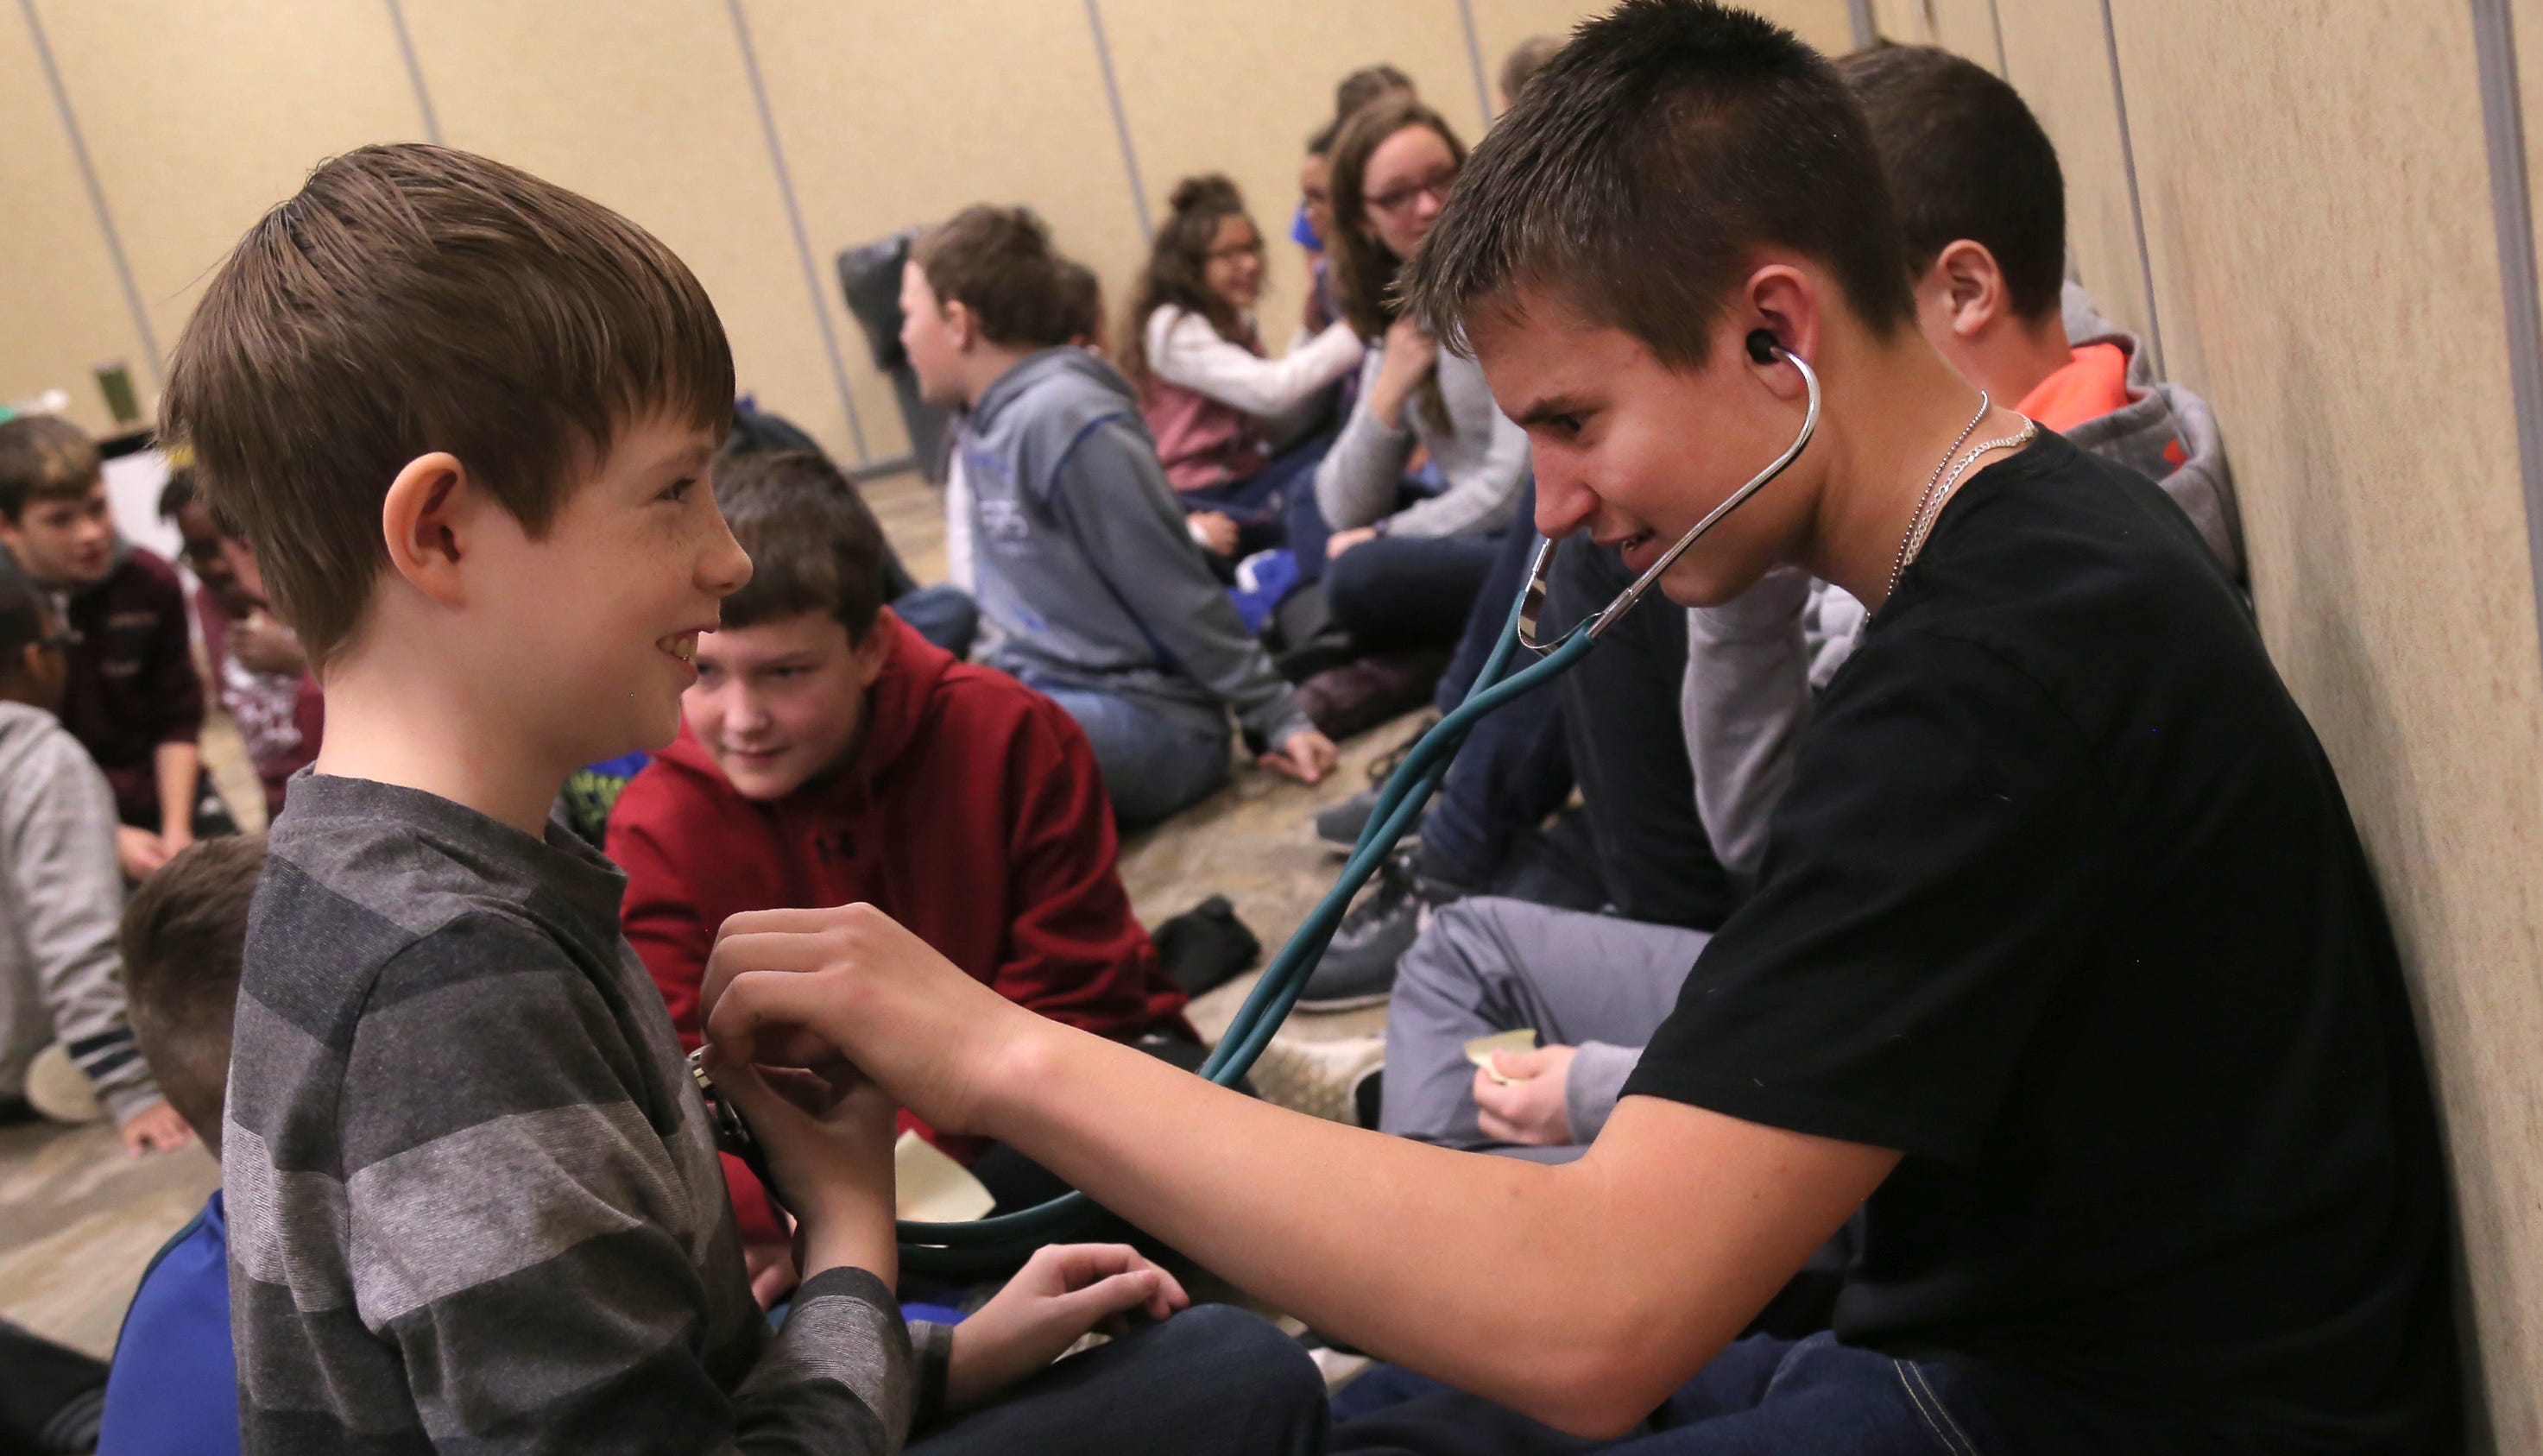 Sixth-graders from local schools get chance to explore career options